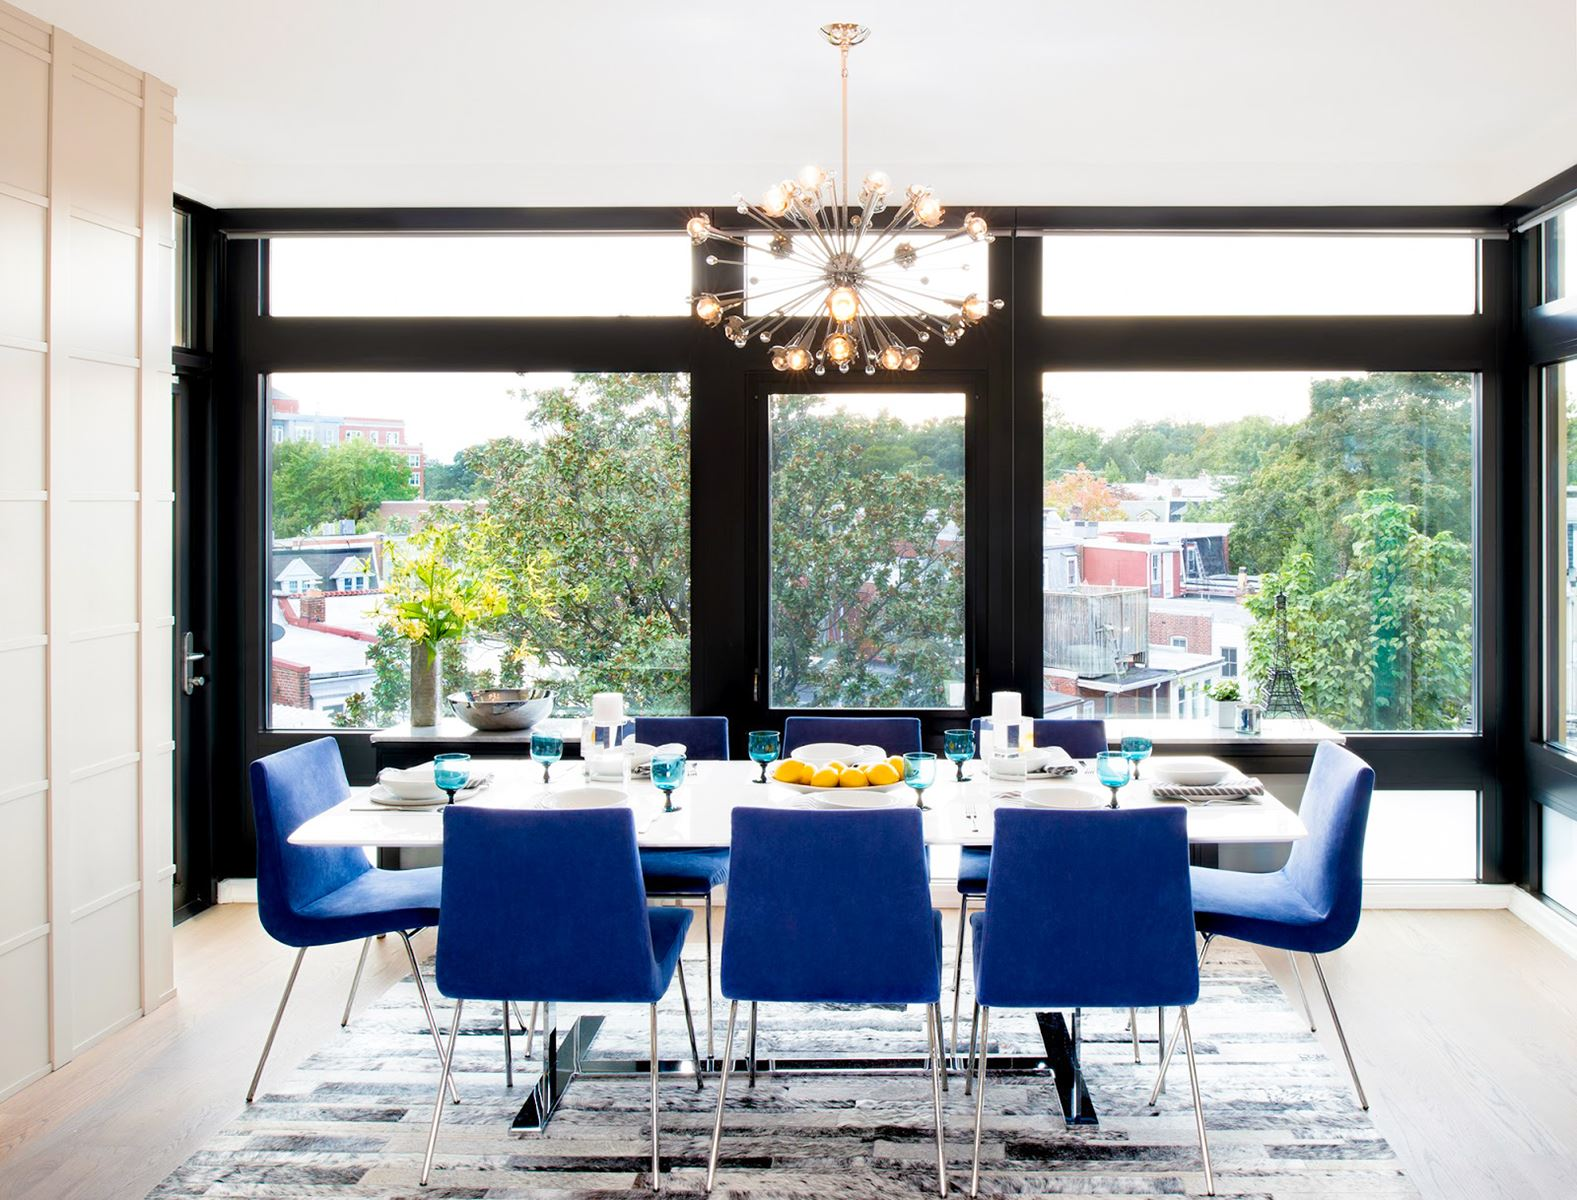 4 Home Design Ideas With Blue Upholstered Dining Chairs